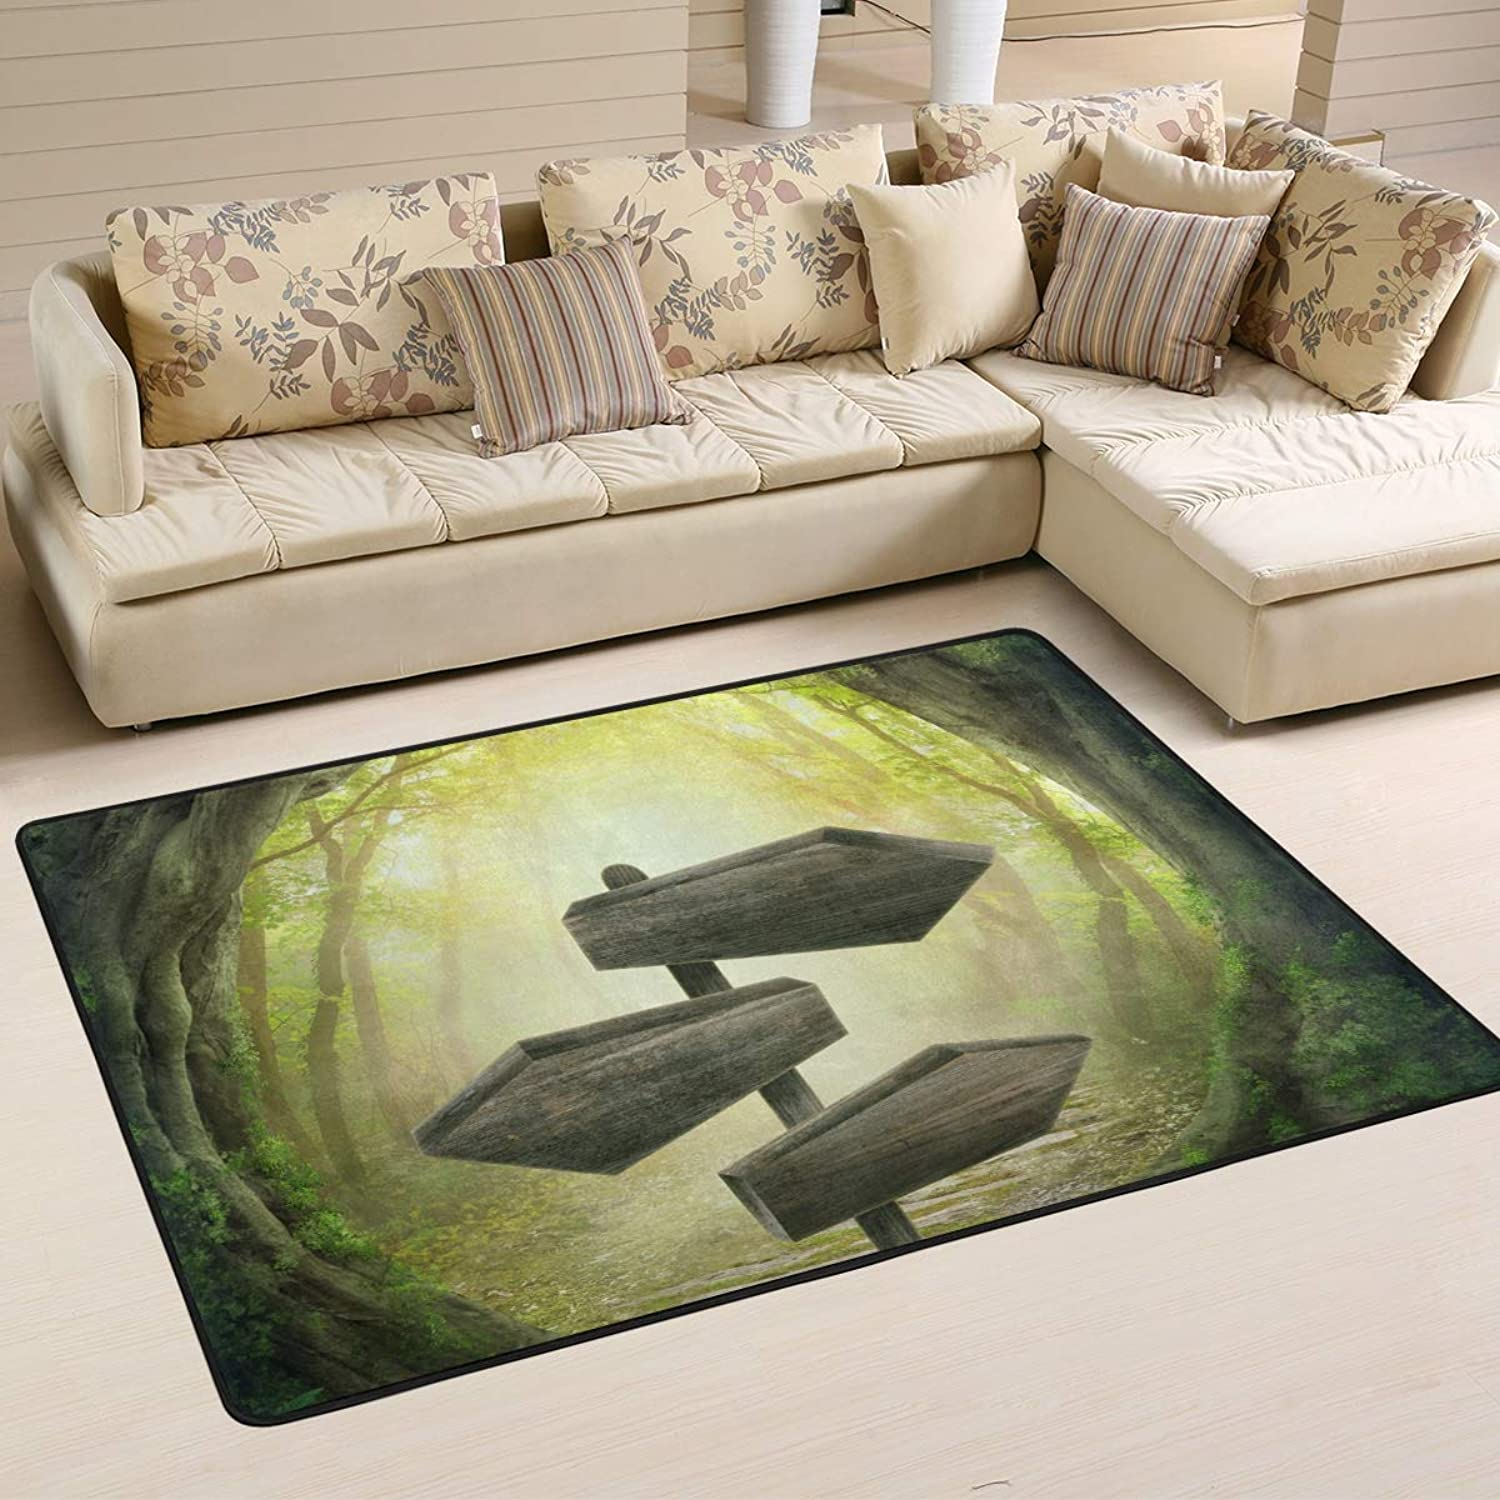 Area Rugs Doormats Mysterious Dream Forest Sign Passage Soft Carpet Mat 6'x4' (72x48 Inches) for Living Dining Dorm Room Bedroom Home Decorative